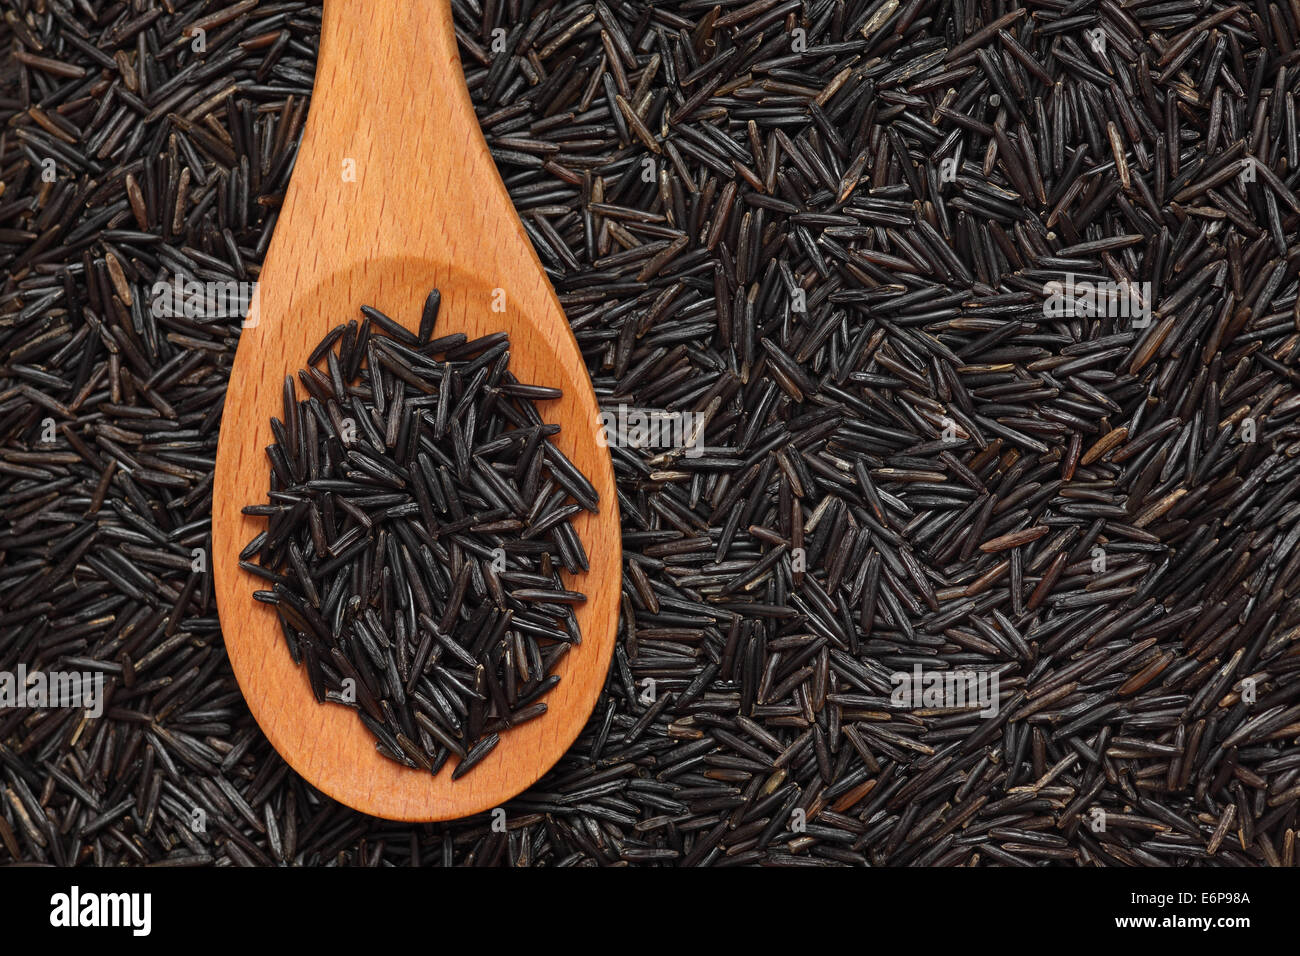 Wild rice in a wooden spoon on wild rice background. - Stock Image